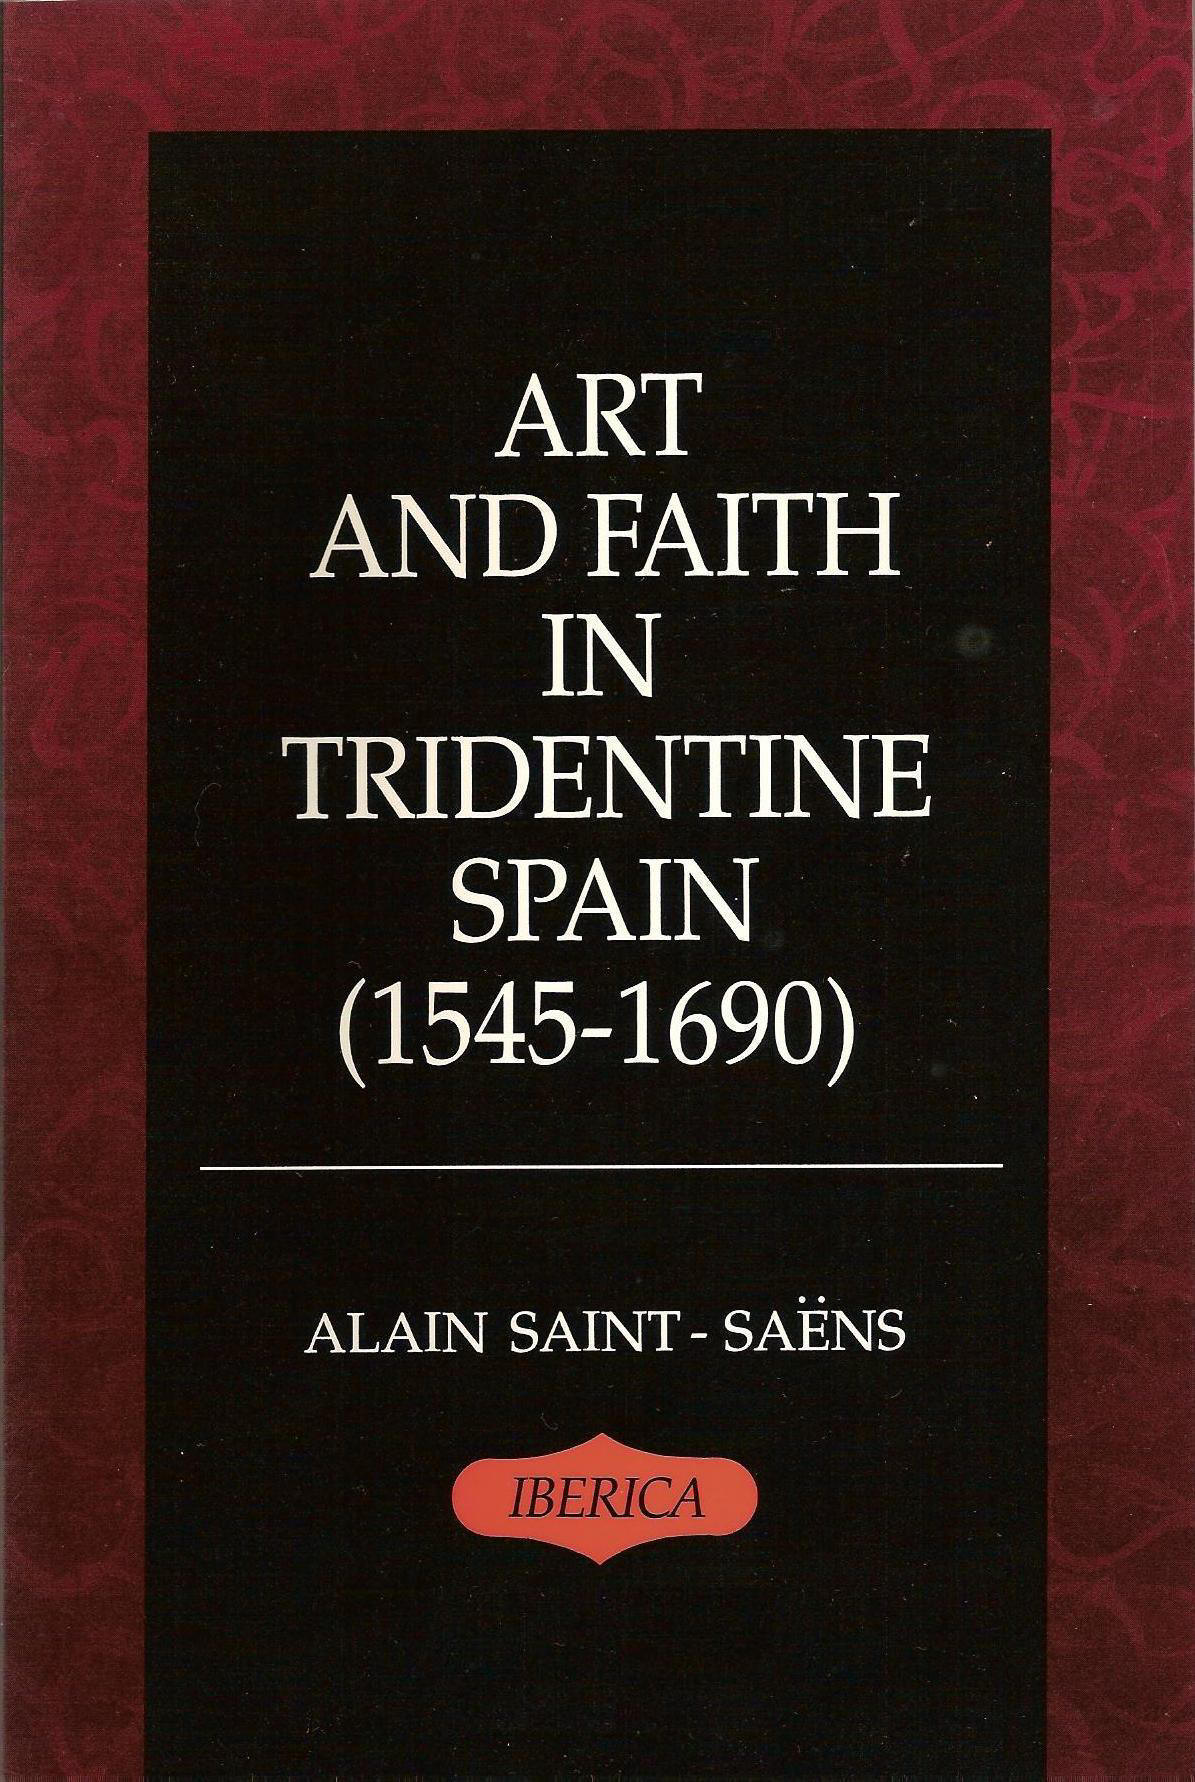 Art and Faith in Tridentine Spain (1545-1690)